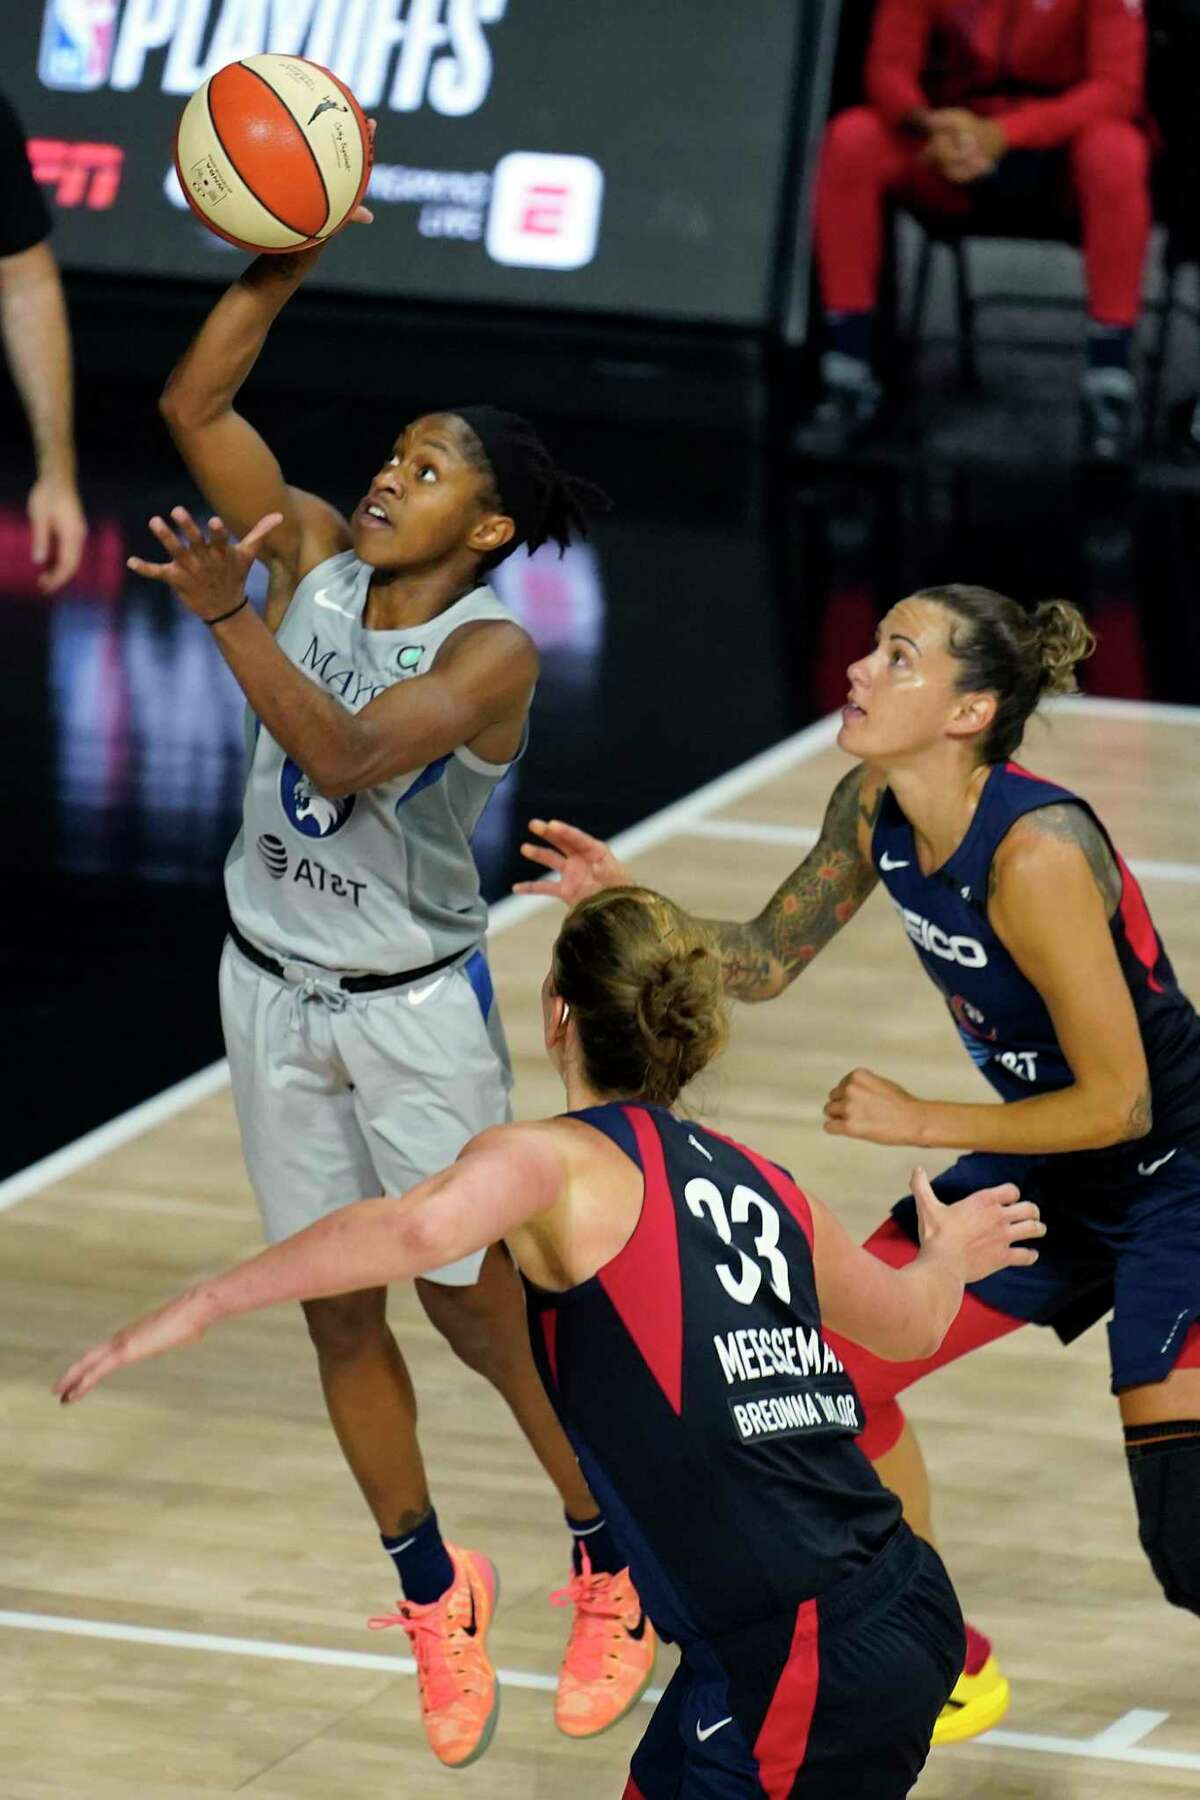 The Lynx's Crystal Dangerfield (2) shoots over the Mystics' Emma Meesseman (33) and Jacki Gemelos (3) during a game earlier the month. Dangerfield, a former UConn star, was named the AP WNBA Rookie of the Year on Tuesday.